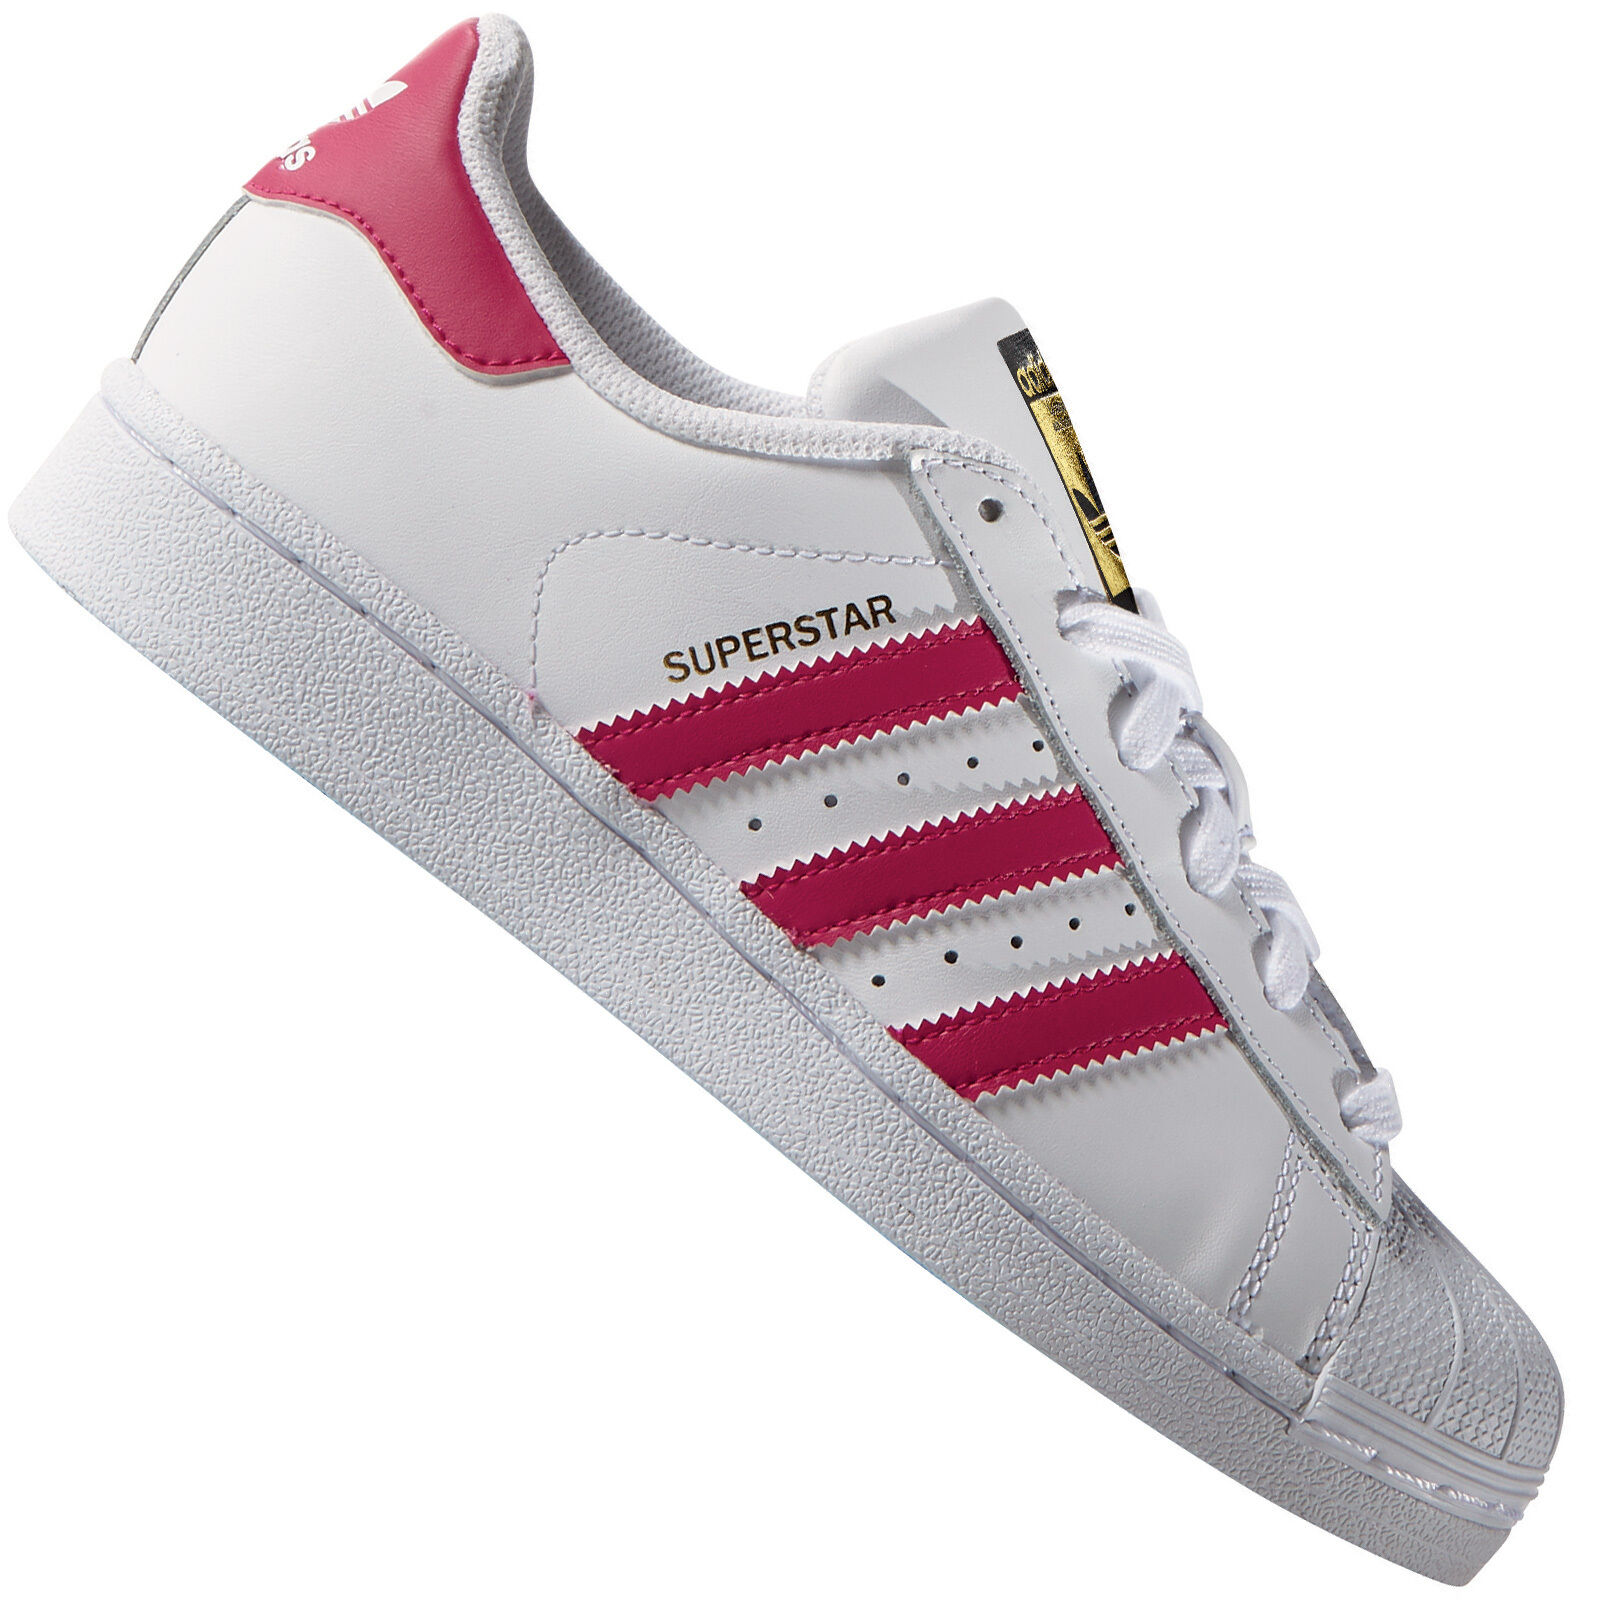 Adidas Originals Superstar Foundation White Pink B23644 Women's Sneakers shoes